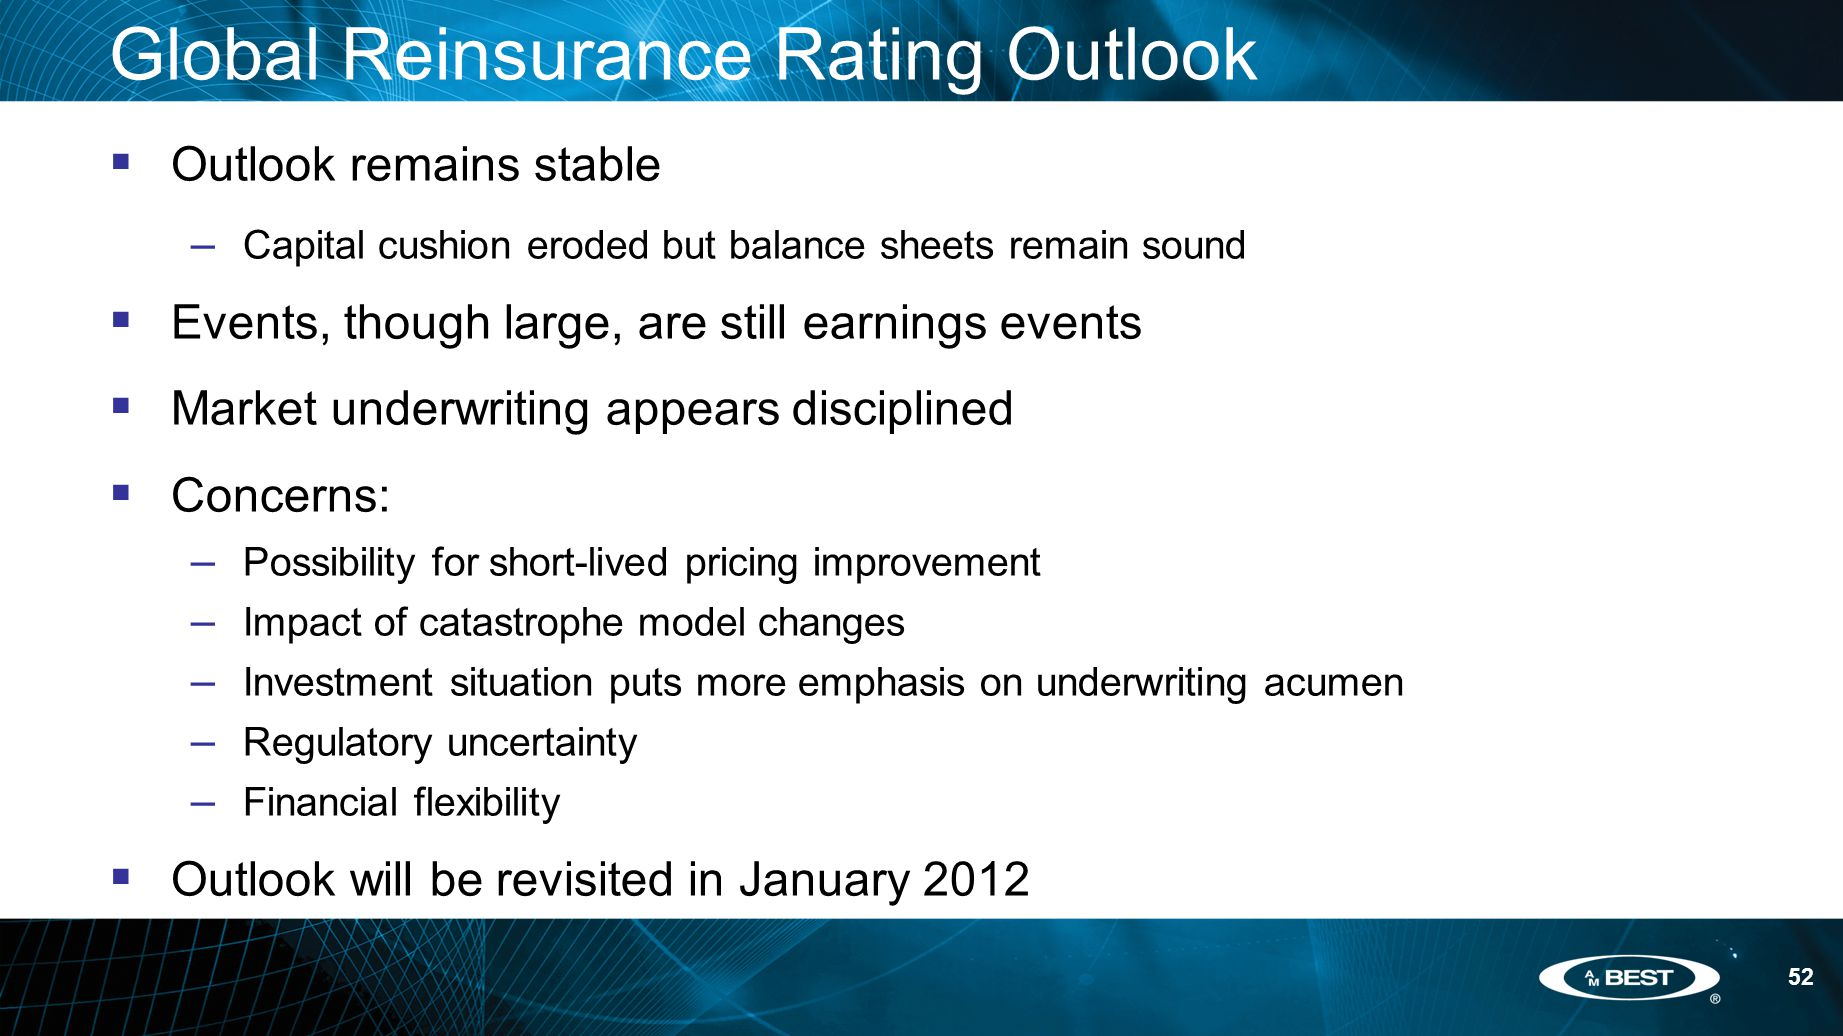 52 Global Reinsurance Rating Outlook  Outlook remains stable – Capital cushion eroded but balance sheets remain sound  Events, though large, are still earnings events  Market underwriting appears disciplined  Concerns: – Possibility for short-lived pricing improvement – Impact of catastrophe model changes – Investment situation puts more emphasis on underwriting acumen – Regulatory uncertainty – Financial flexibility  Outlook will be revisited in January 2012